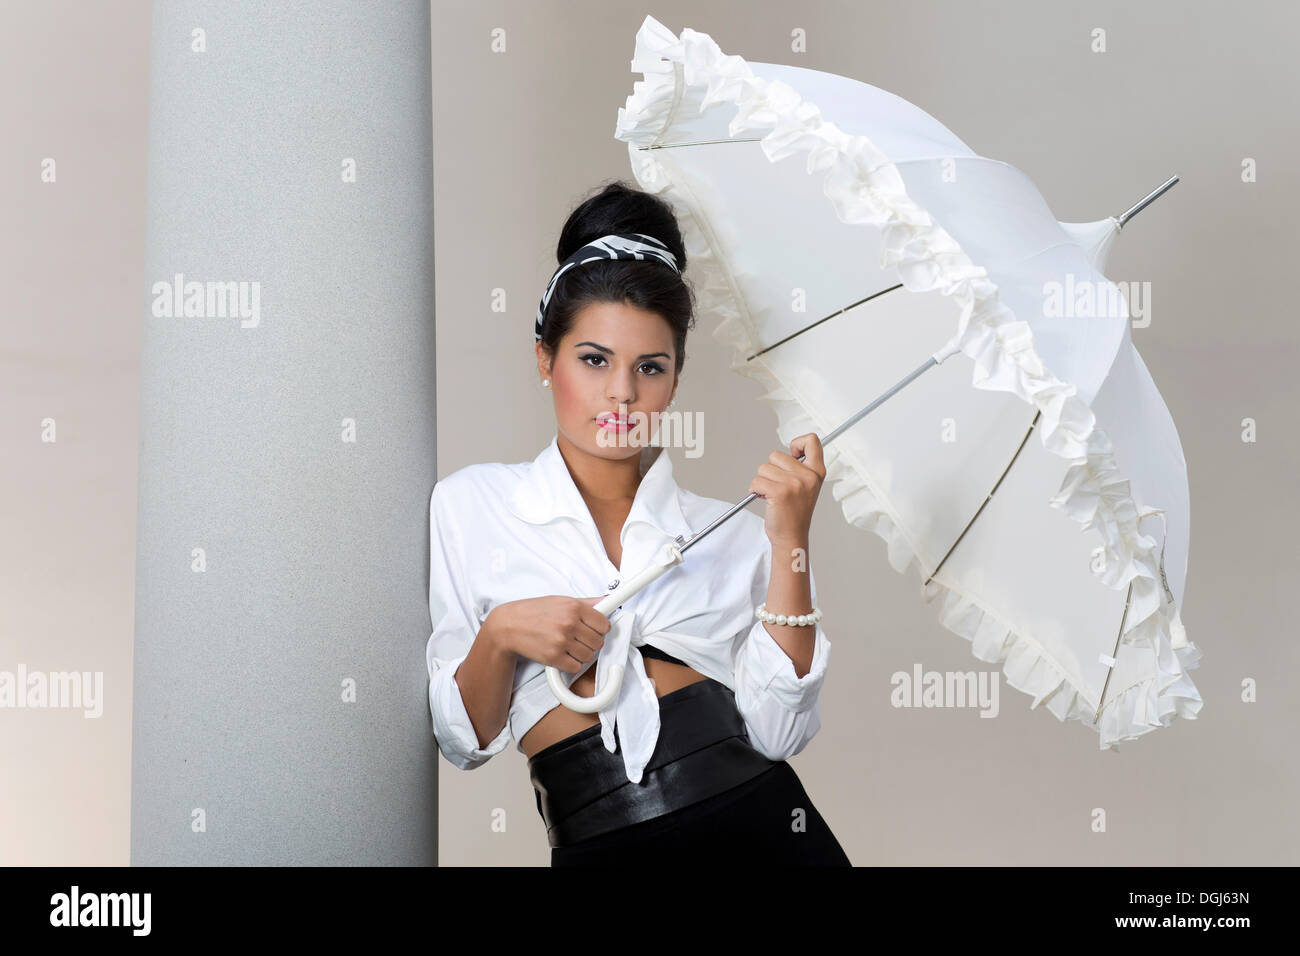 184bcc841 Young woman with an updo hairstyle wearing a white shirt and holding a white  umbrella